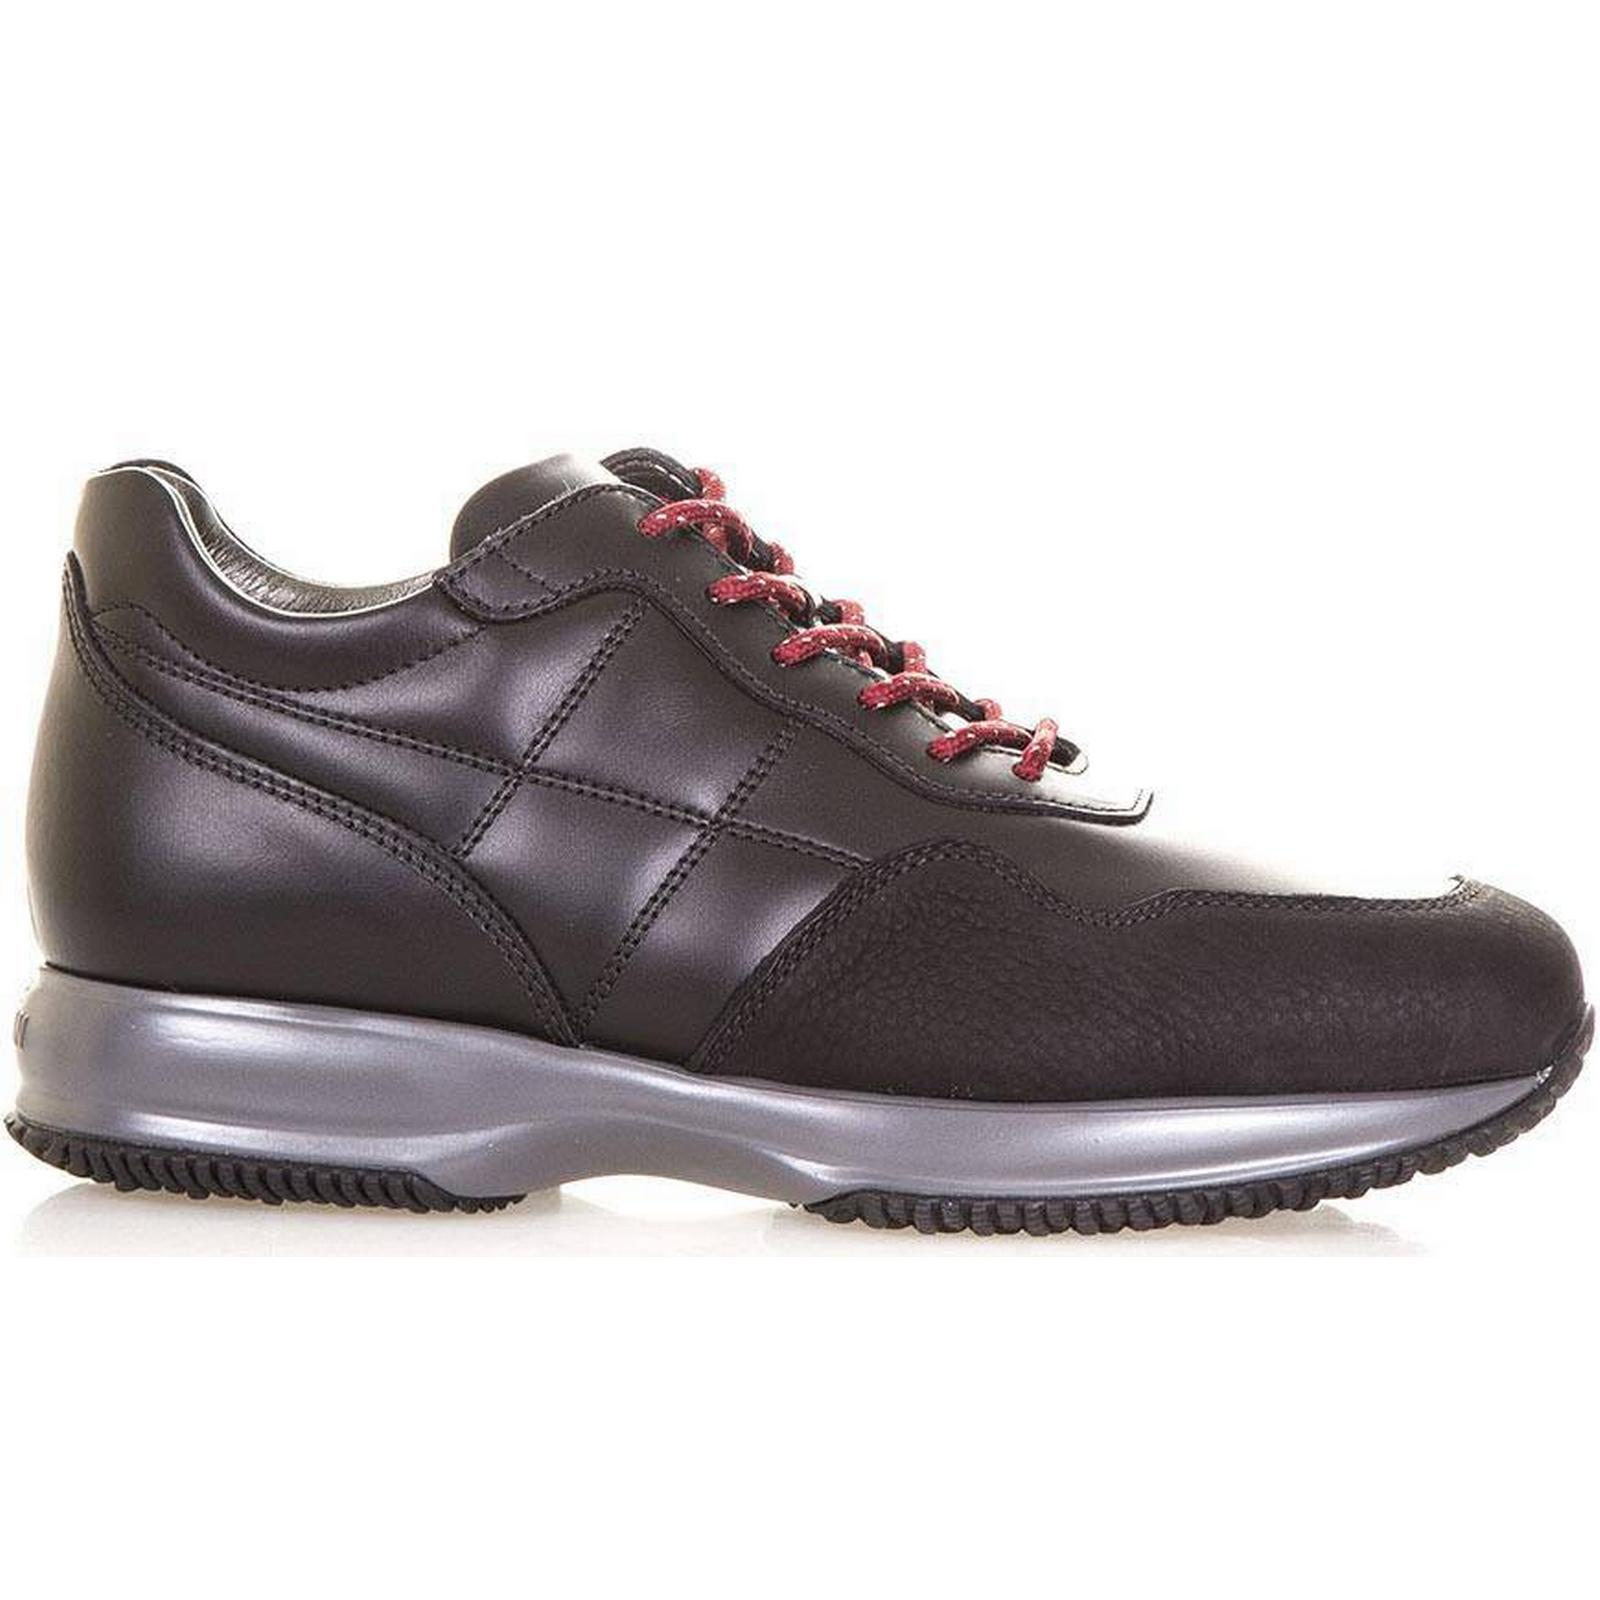 Hogan Details Leather Interactive With Quilted Details Hogan 13f2d2